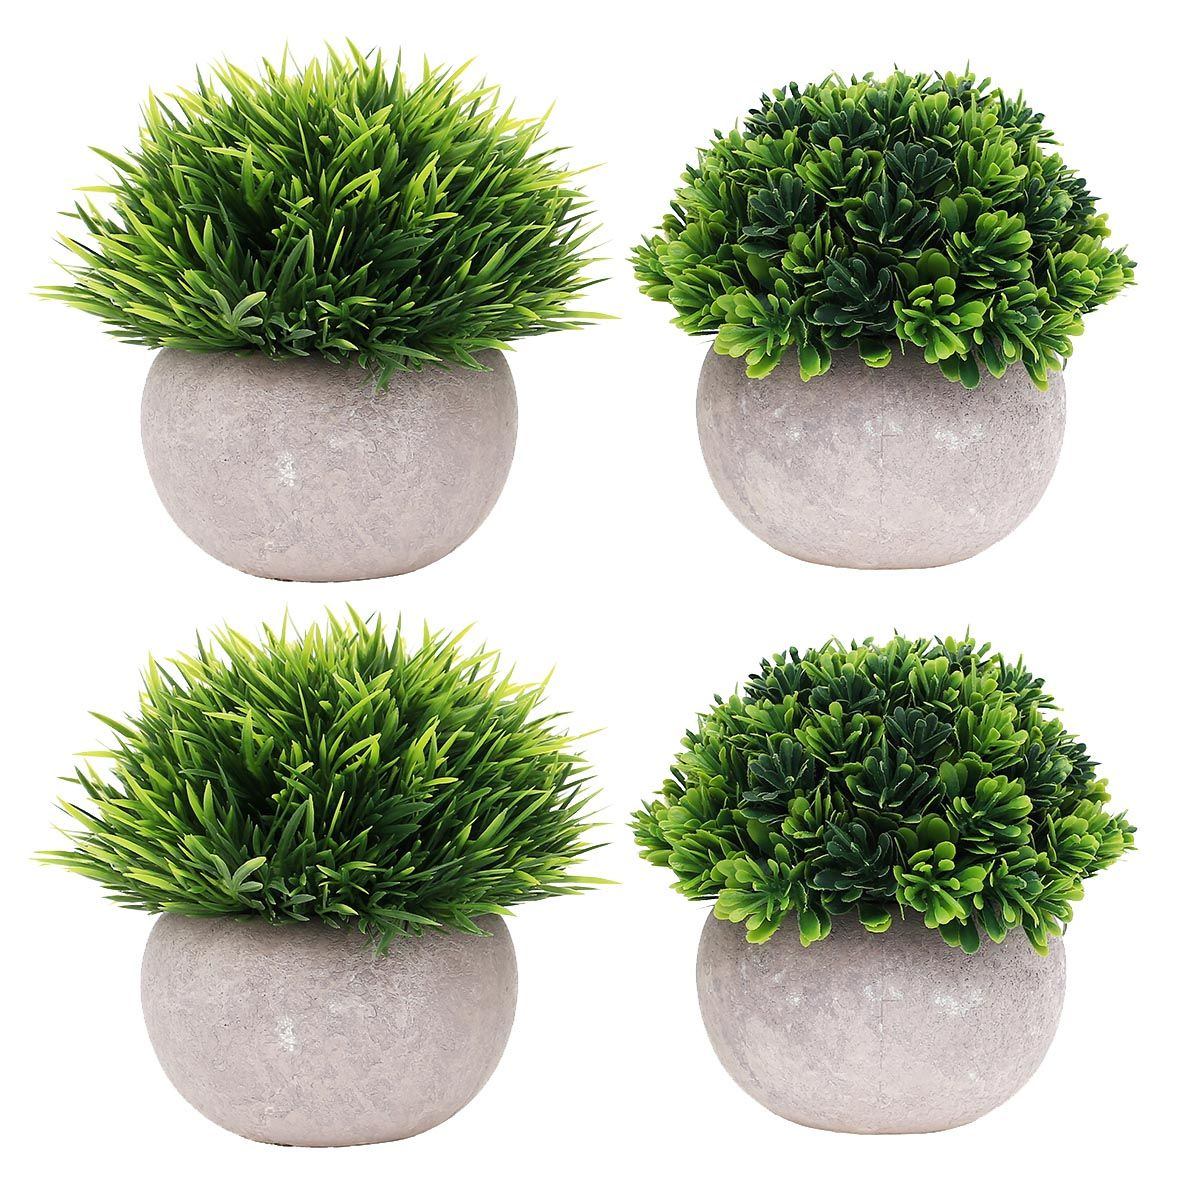 4 Packs Small Artificial Plants In Pot Mini Faked Potted Plants Decorative Faux Plants Centerpiece Topiary Shrubs For Office Bathroom Home Decoration Green In 2020 Small Artificial Plants Artificial Plants Faux Plants